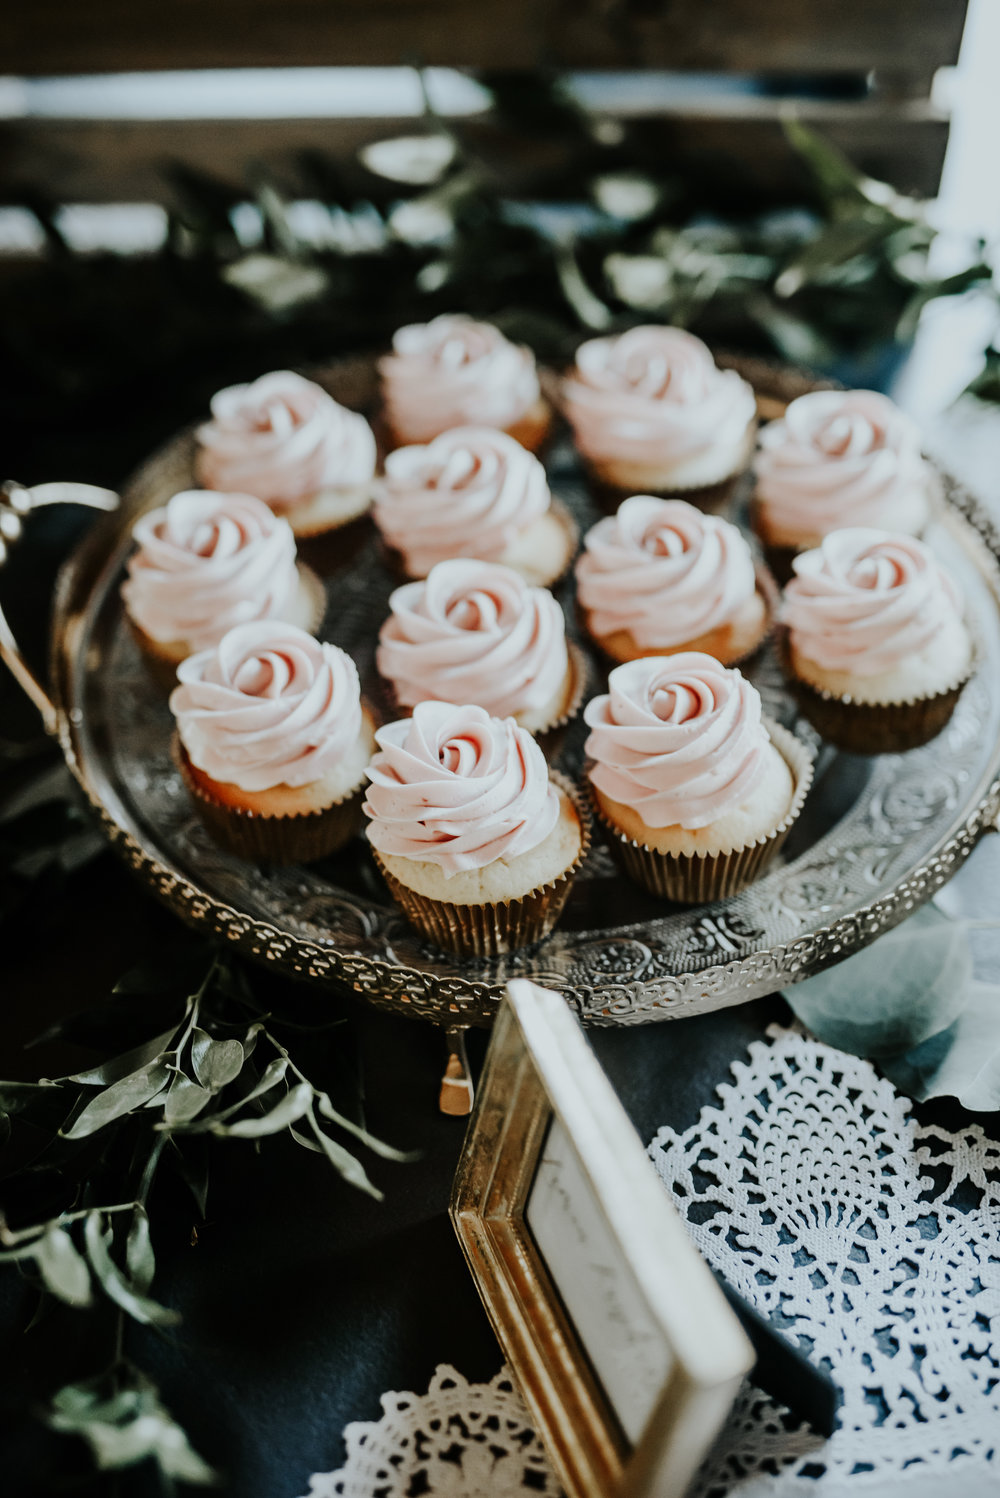 Over 20 dozen cupcakes were used to fill this table, all topped with my signature buttercream rose swirl.